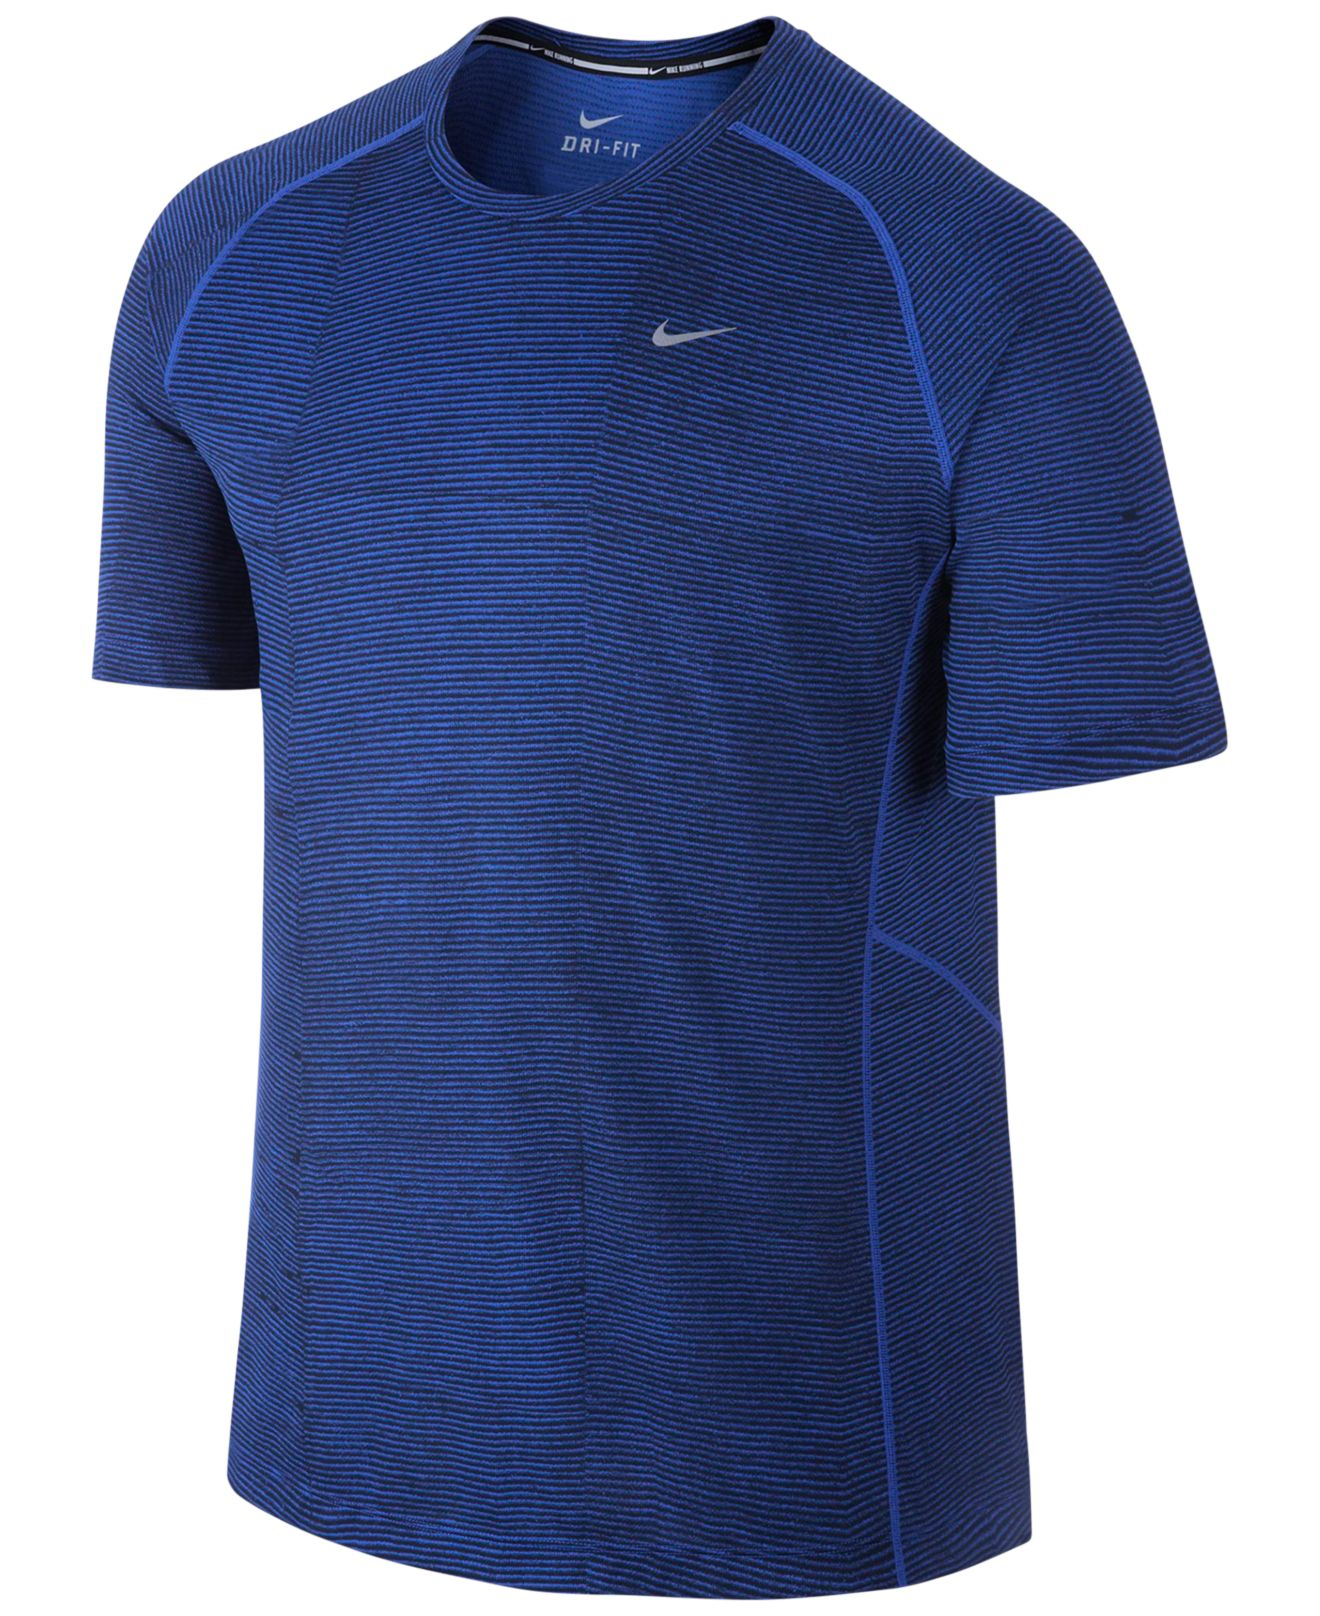 Nike men 39 s miler printed dri fit t shirt in blue for men for Dri fit dress shirts